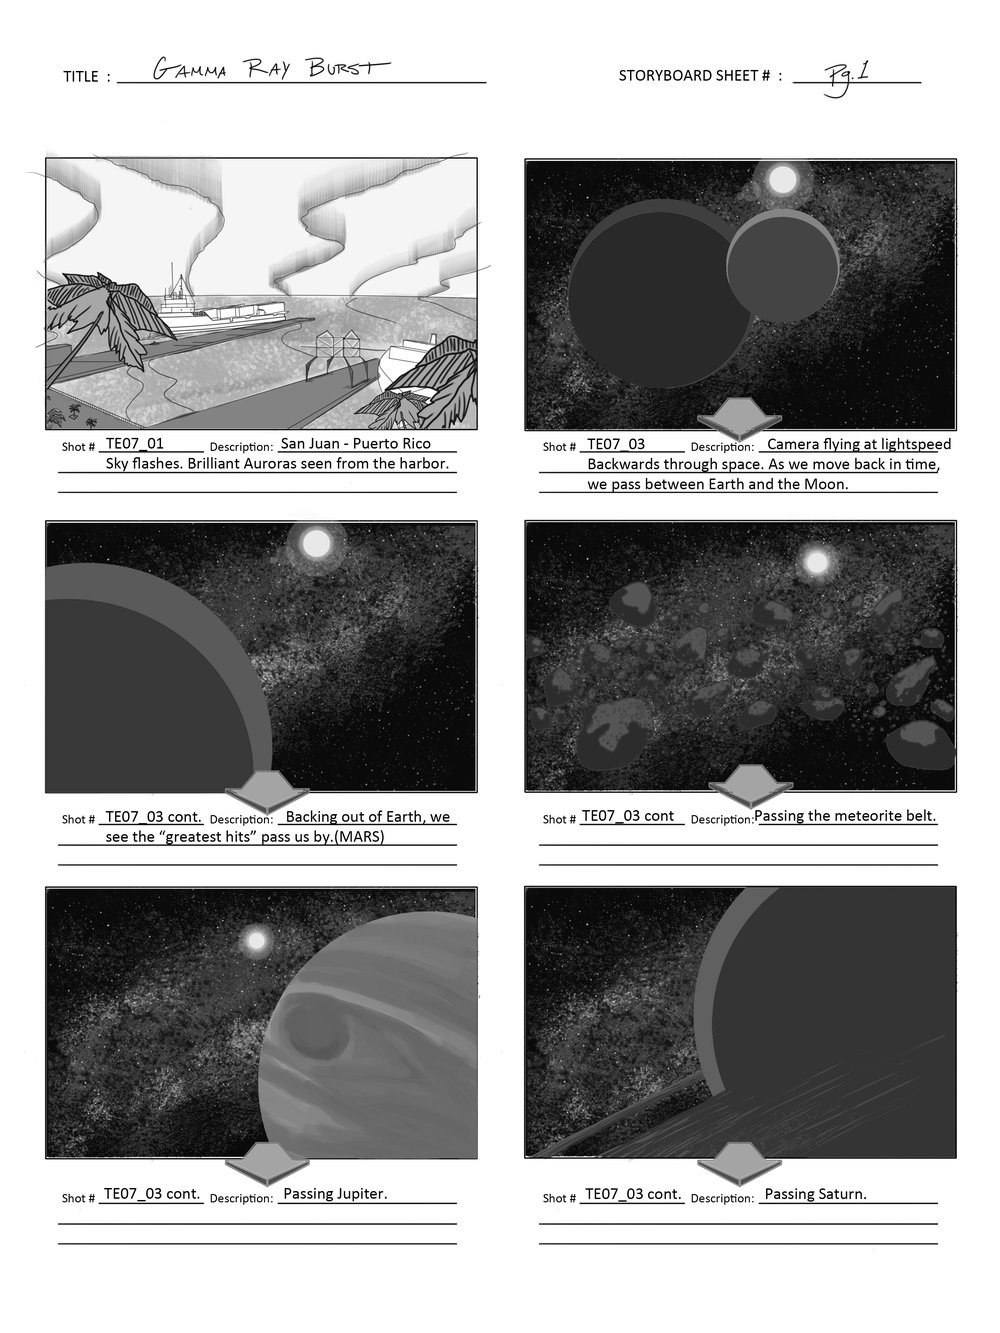 TE07_Gamma Ray Burst_Storyboard Digital Revision pg 01.jpg